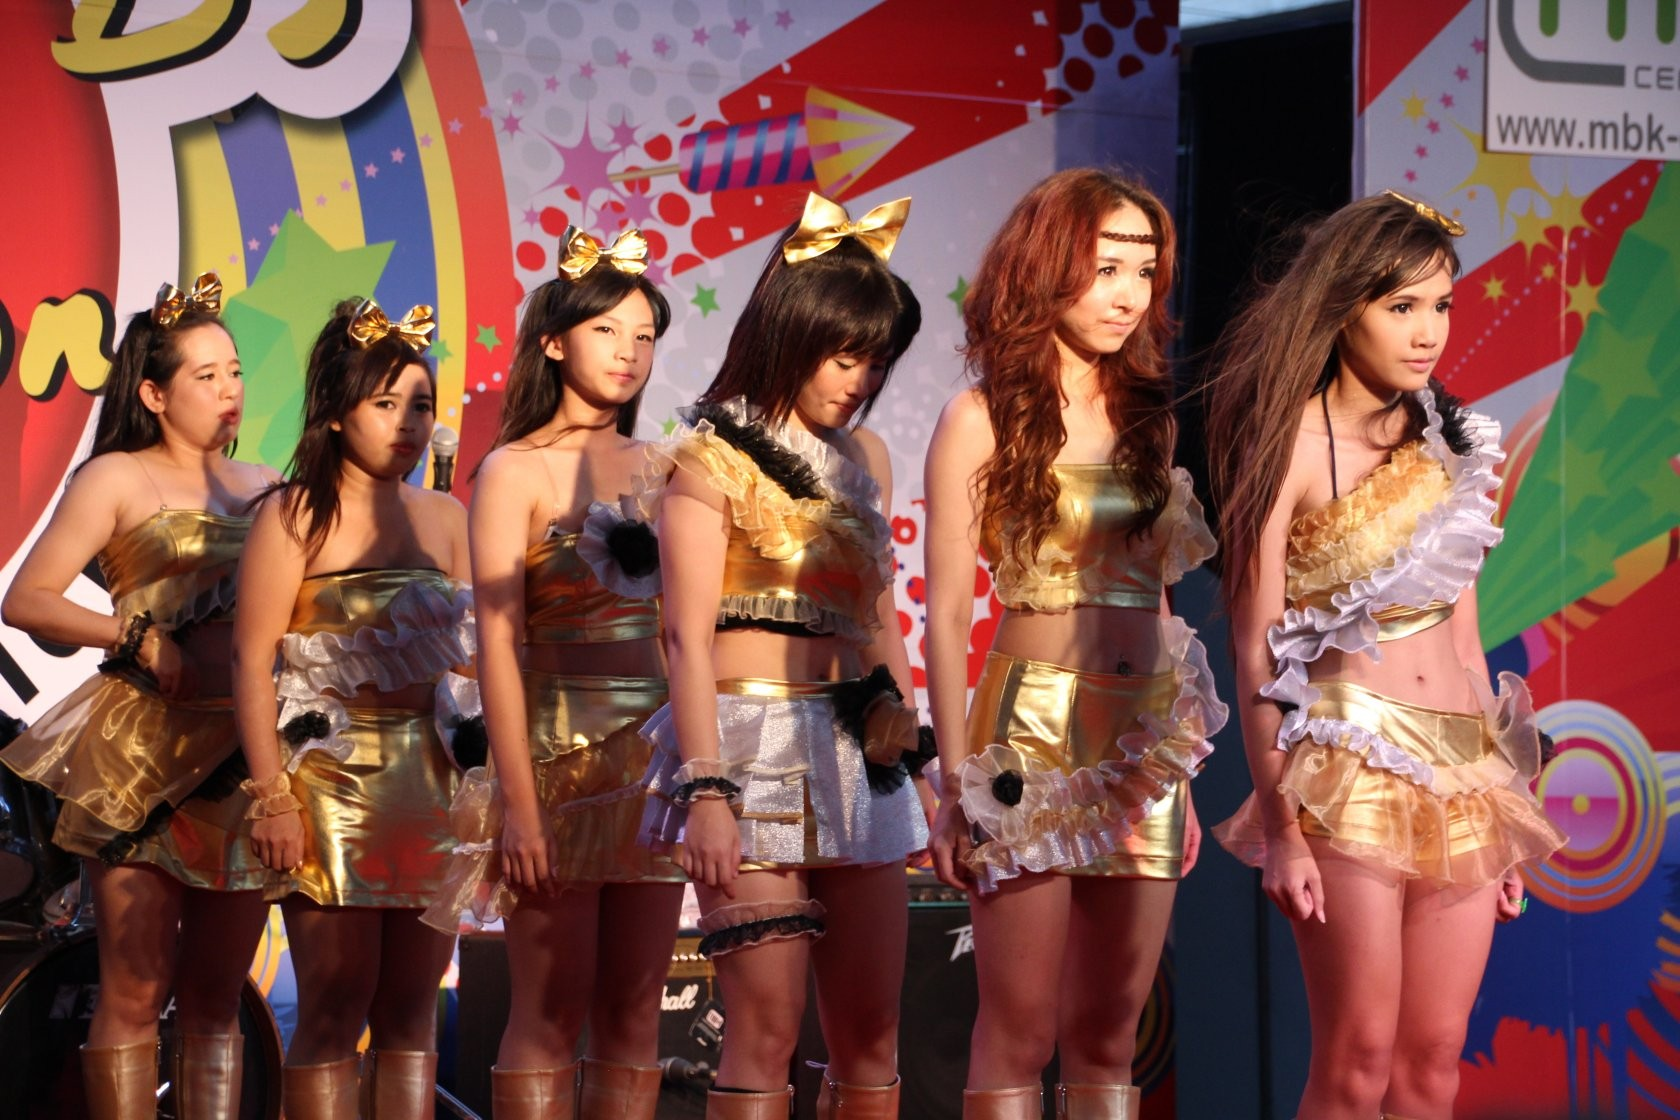 Bangkok - Cosplay / Festival J-Trends in Town am MBK XV